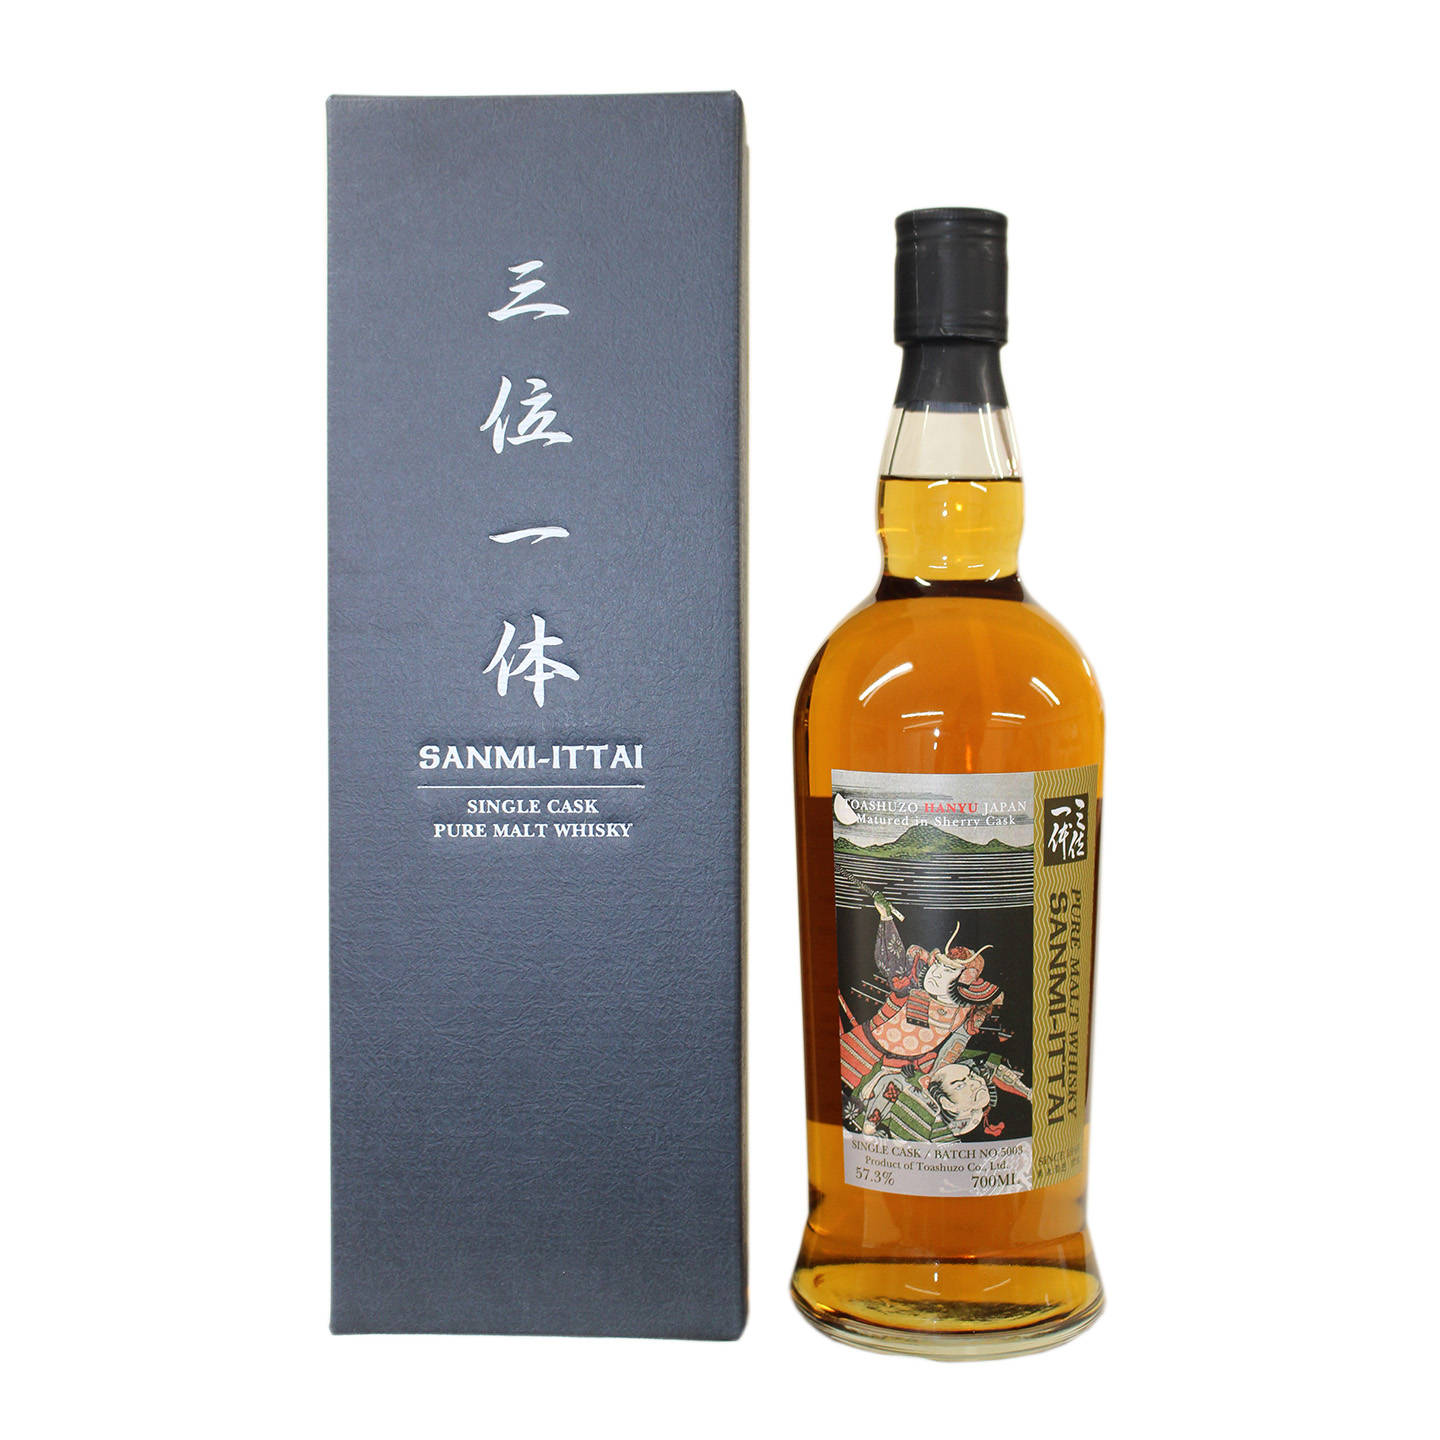 The Trinitas Japanese Whisky Legendary Warrior